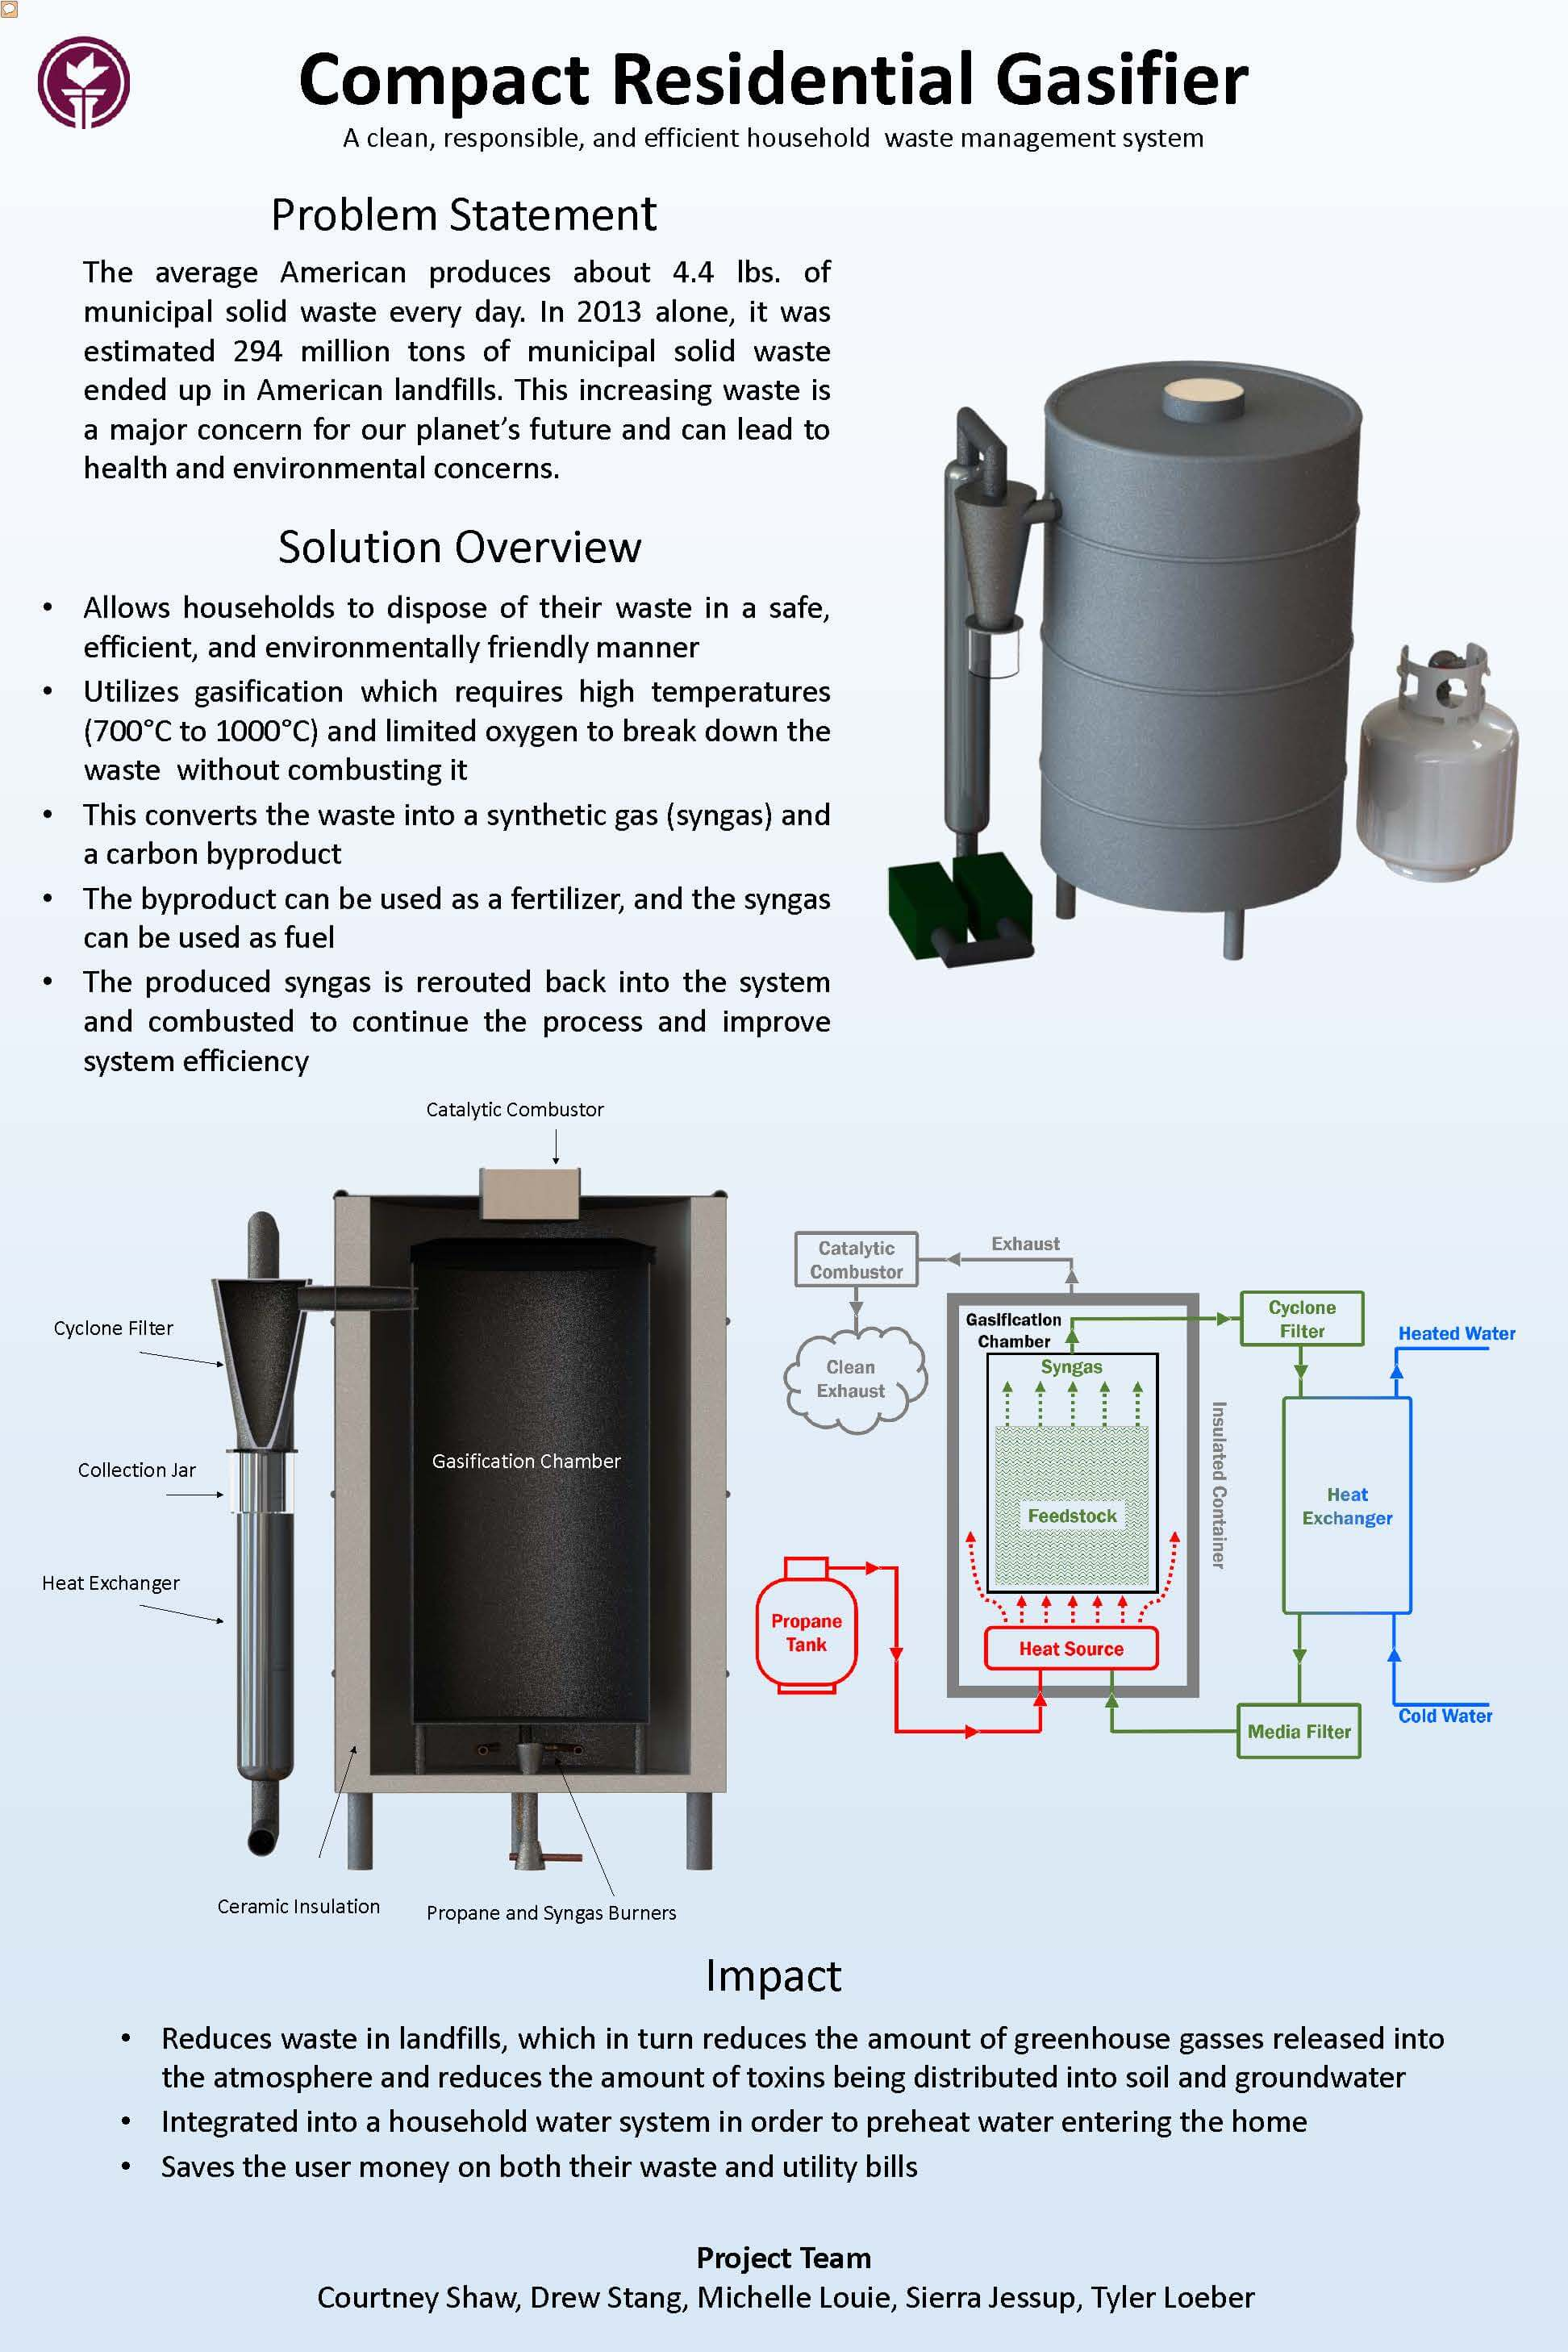 Compact Residential Gasifier Poster